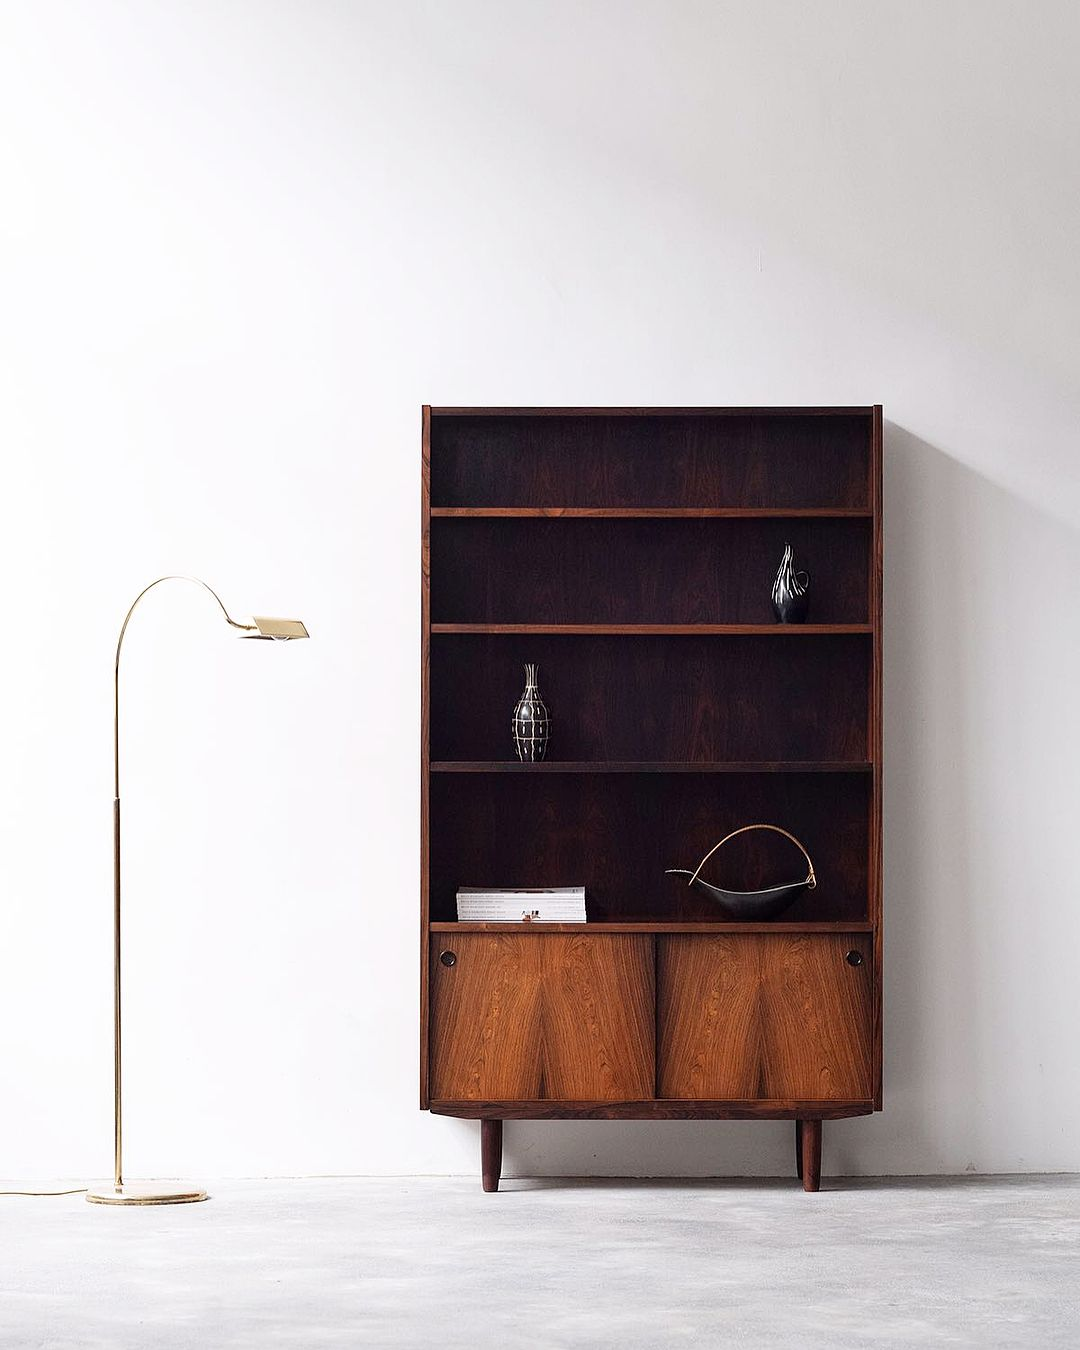 Beautiful Vintage Danish Bookshelf In Brazilian Rosewood Off To Her New Home This Morning Labeled